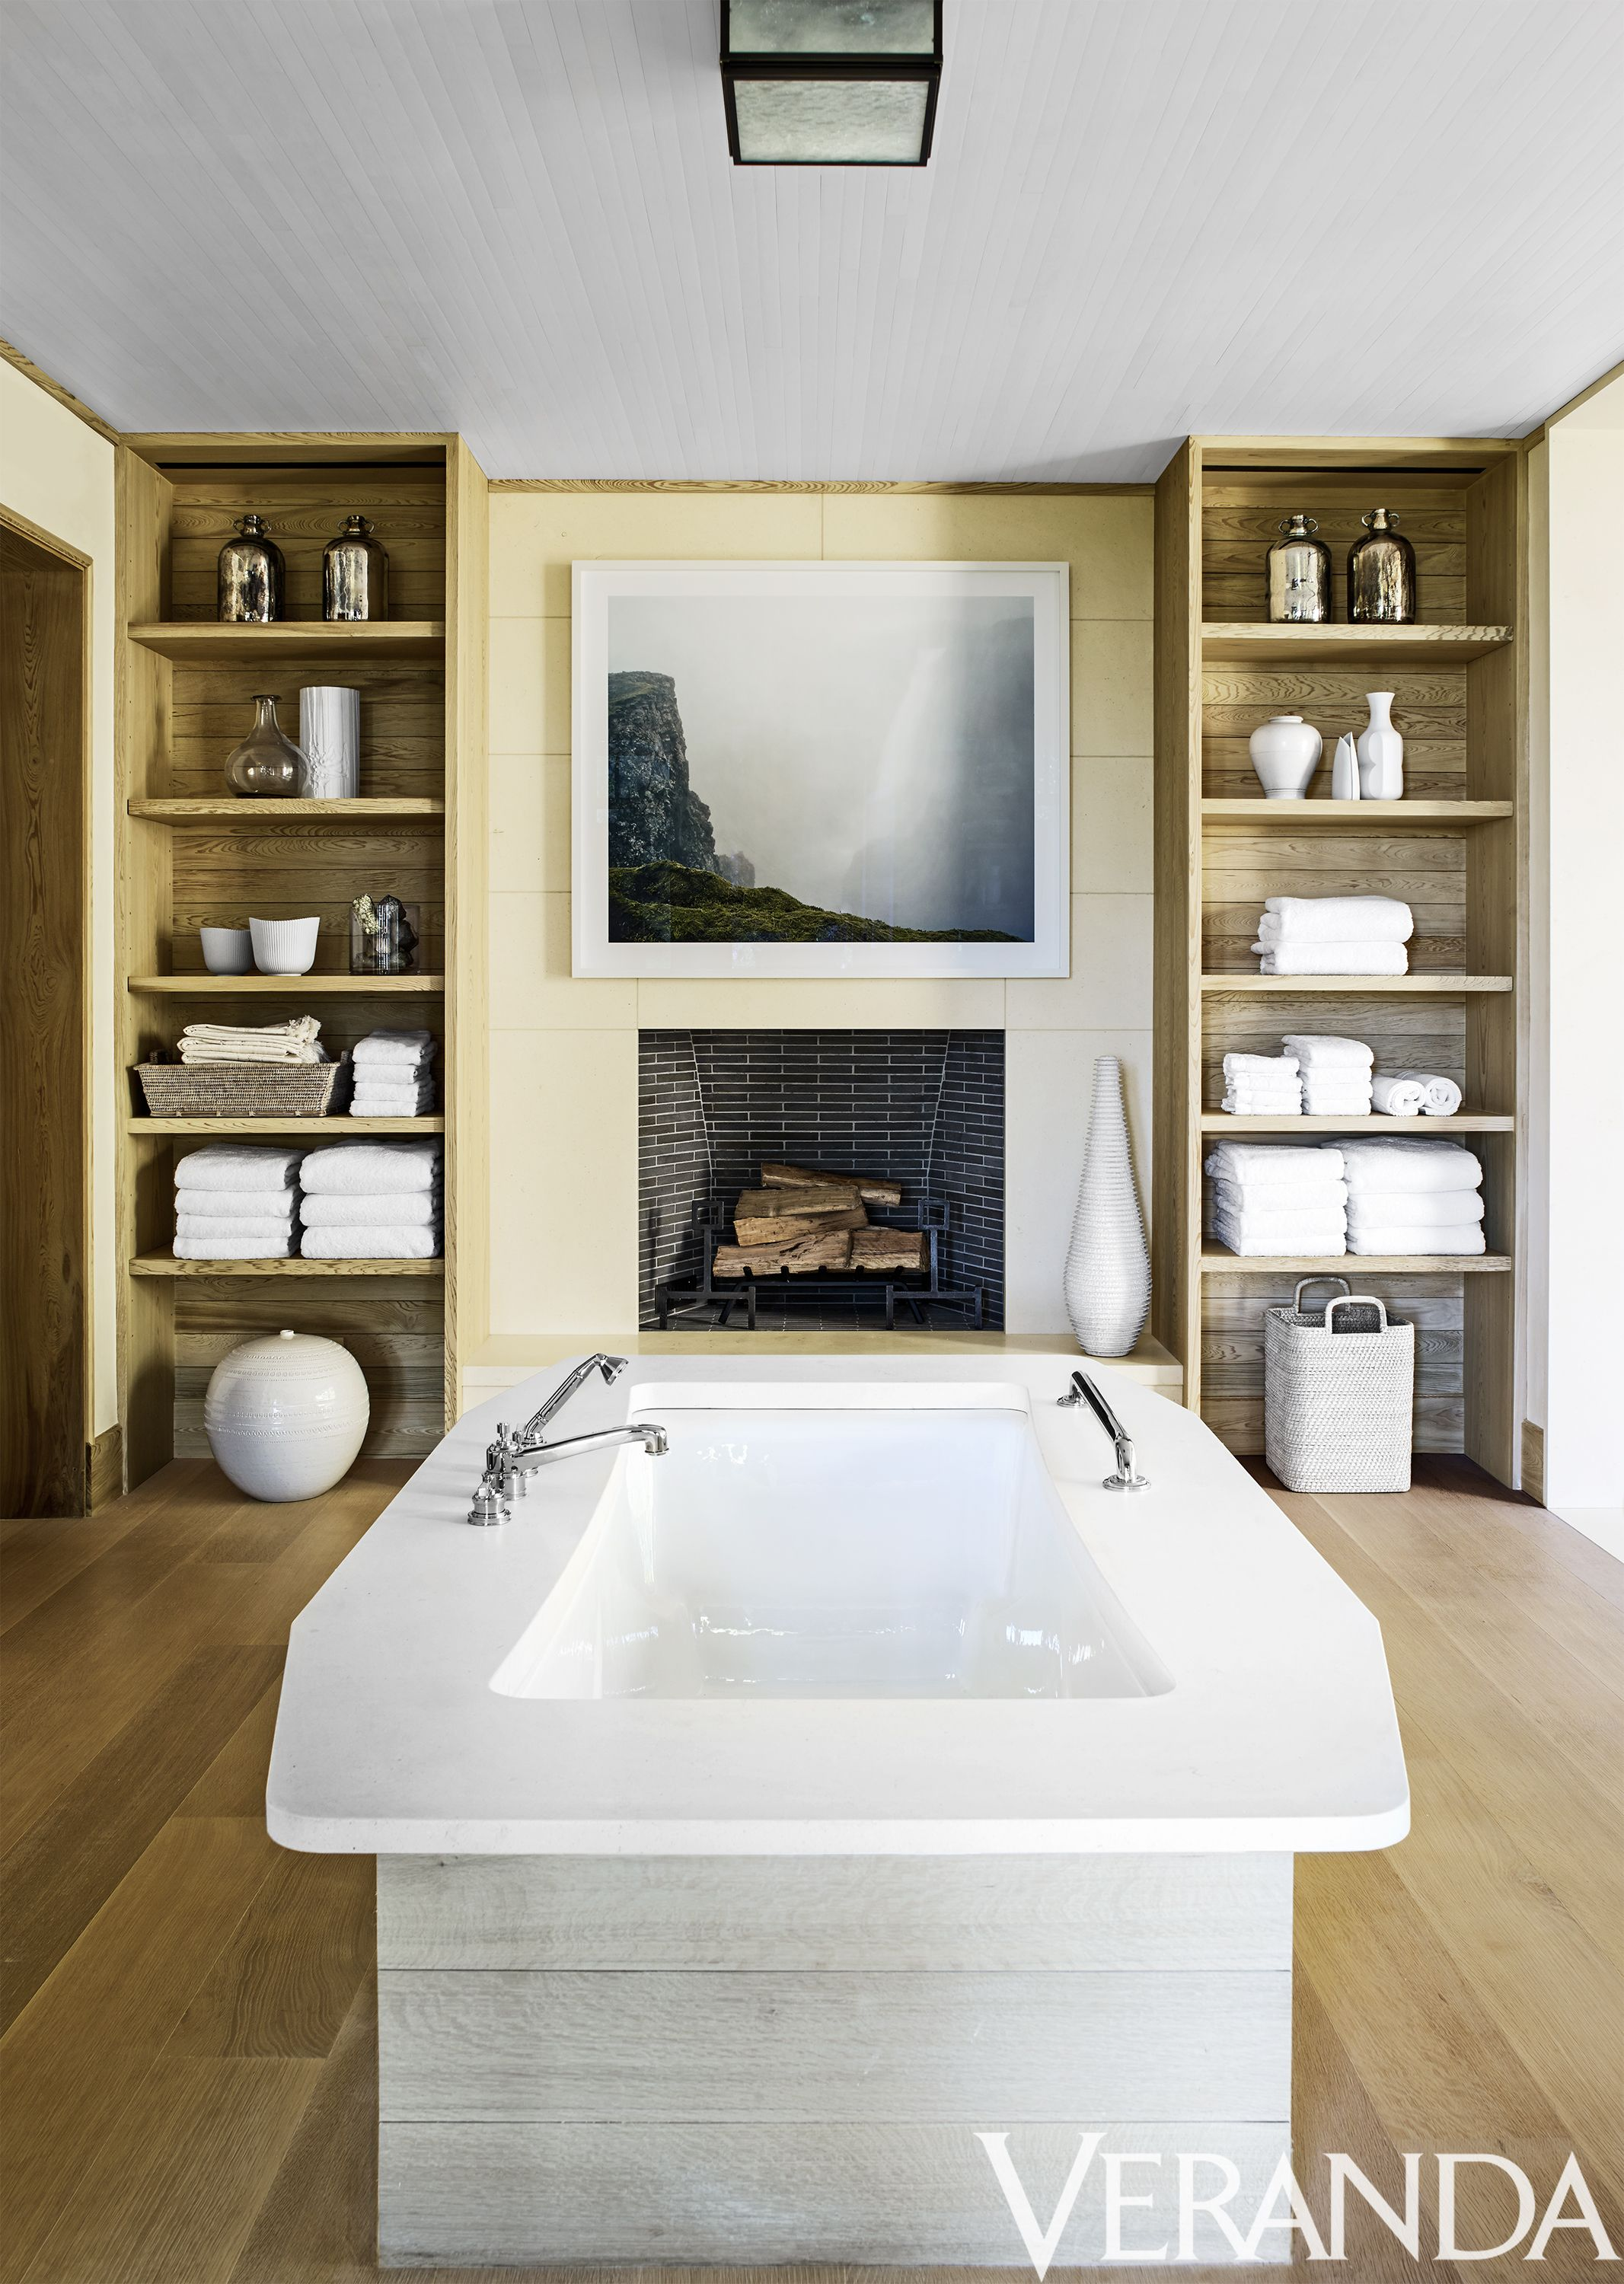 20 Best Bathtubs - Luxury Spa & Freestanding Bathtub Ideas